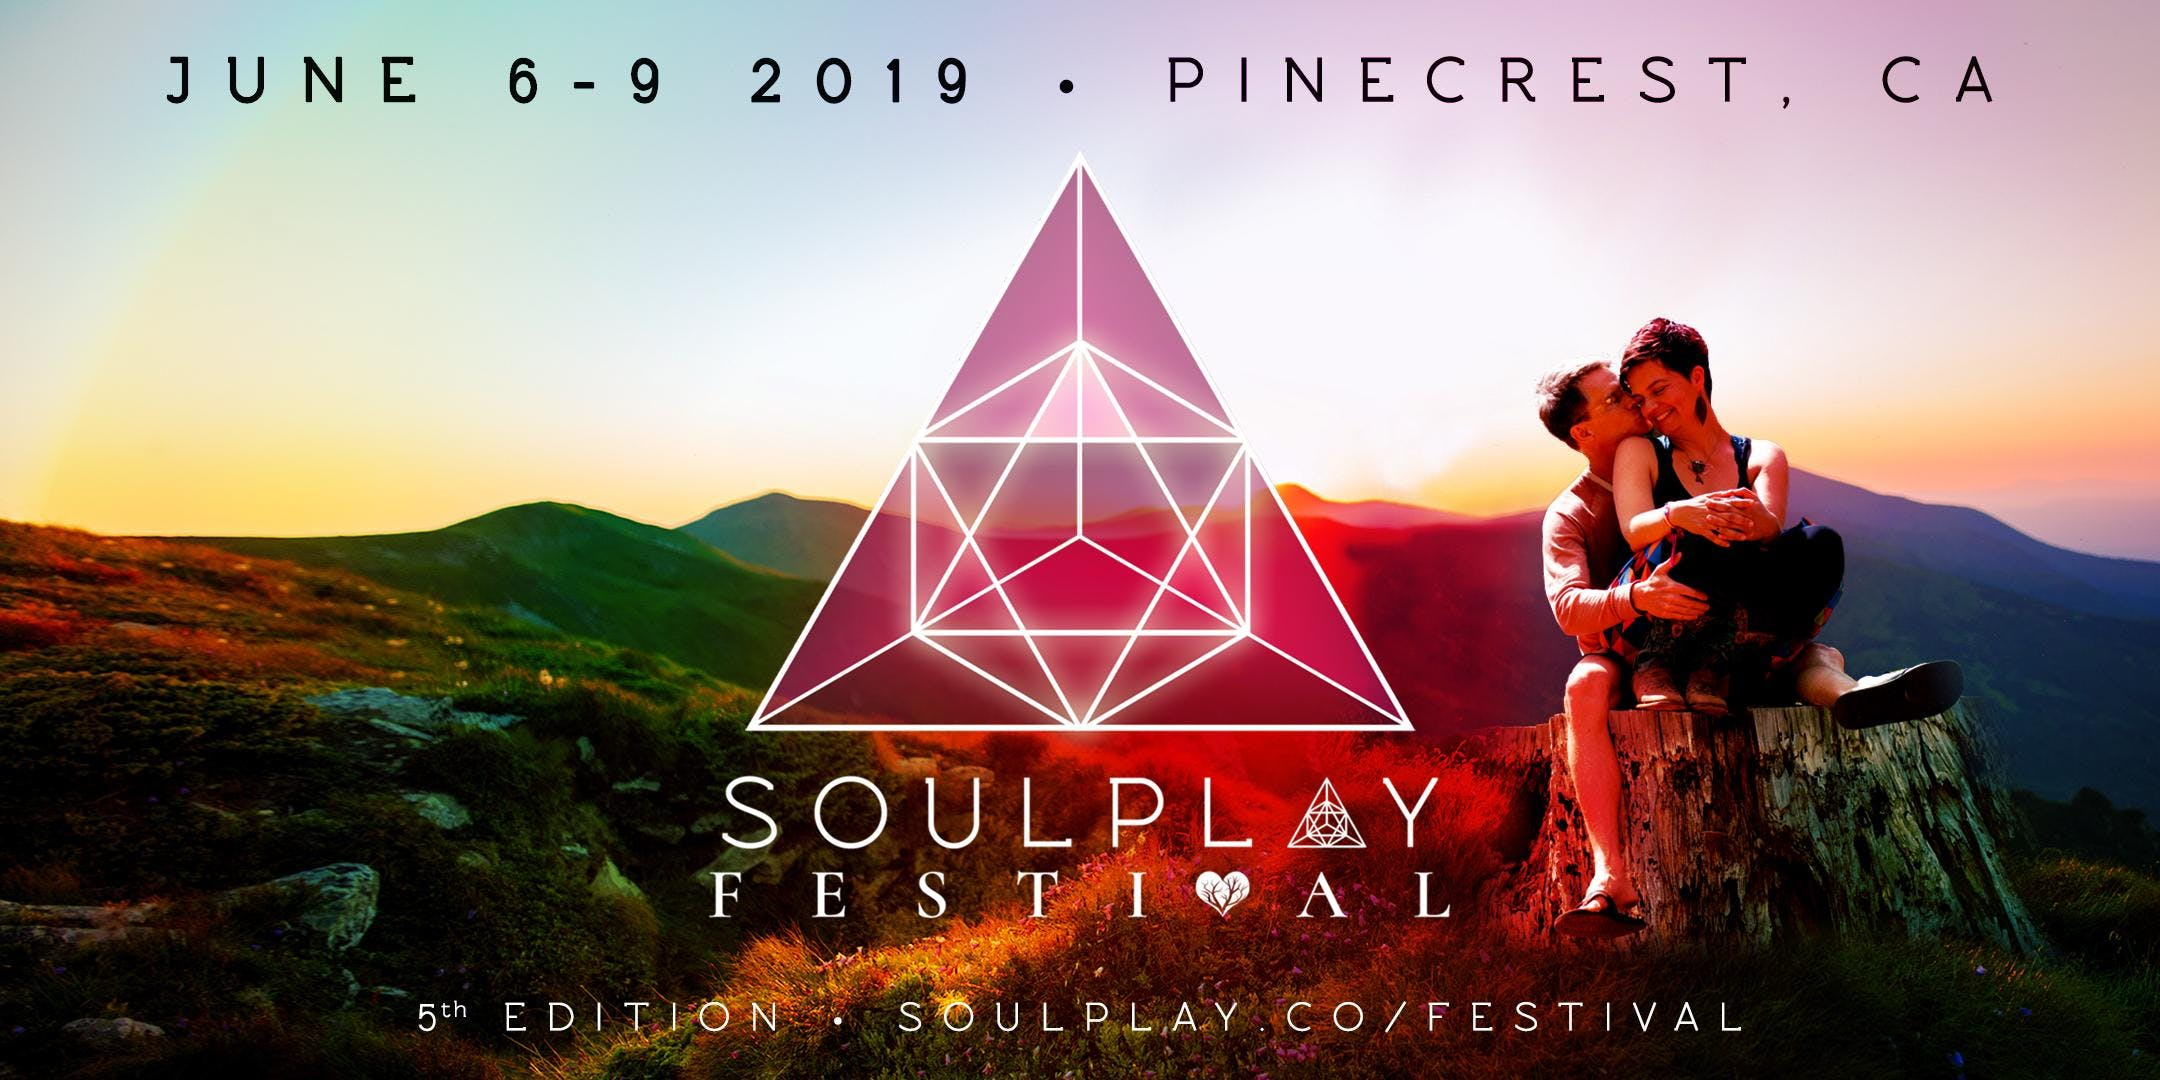 SoulPlay Festival 2019